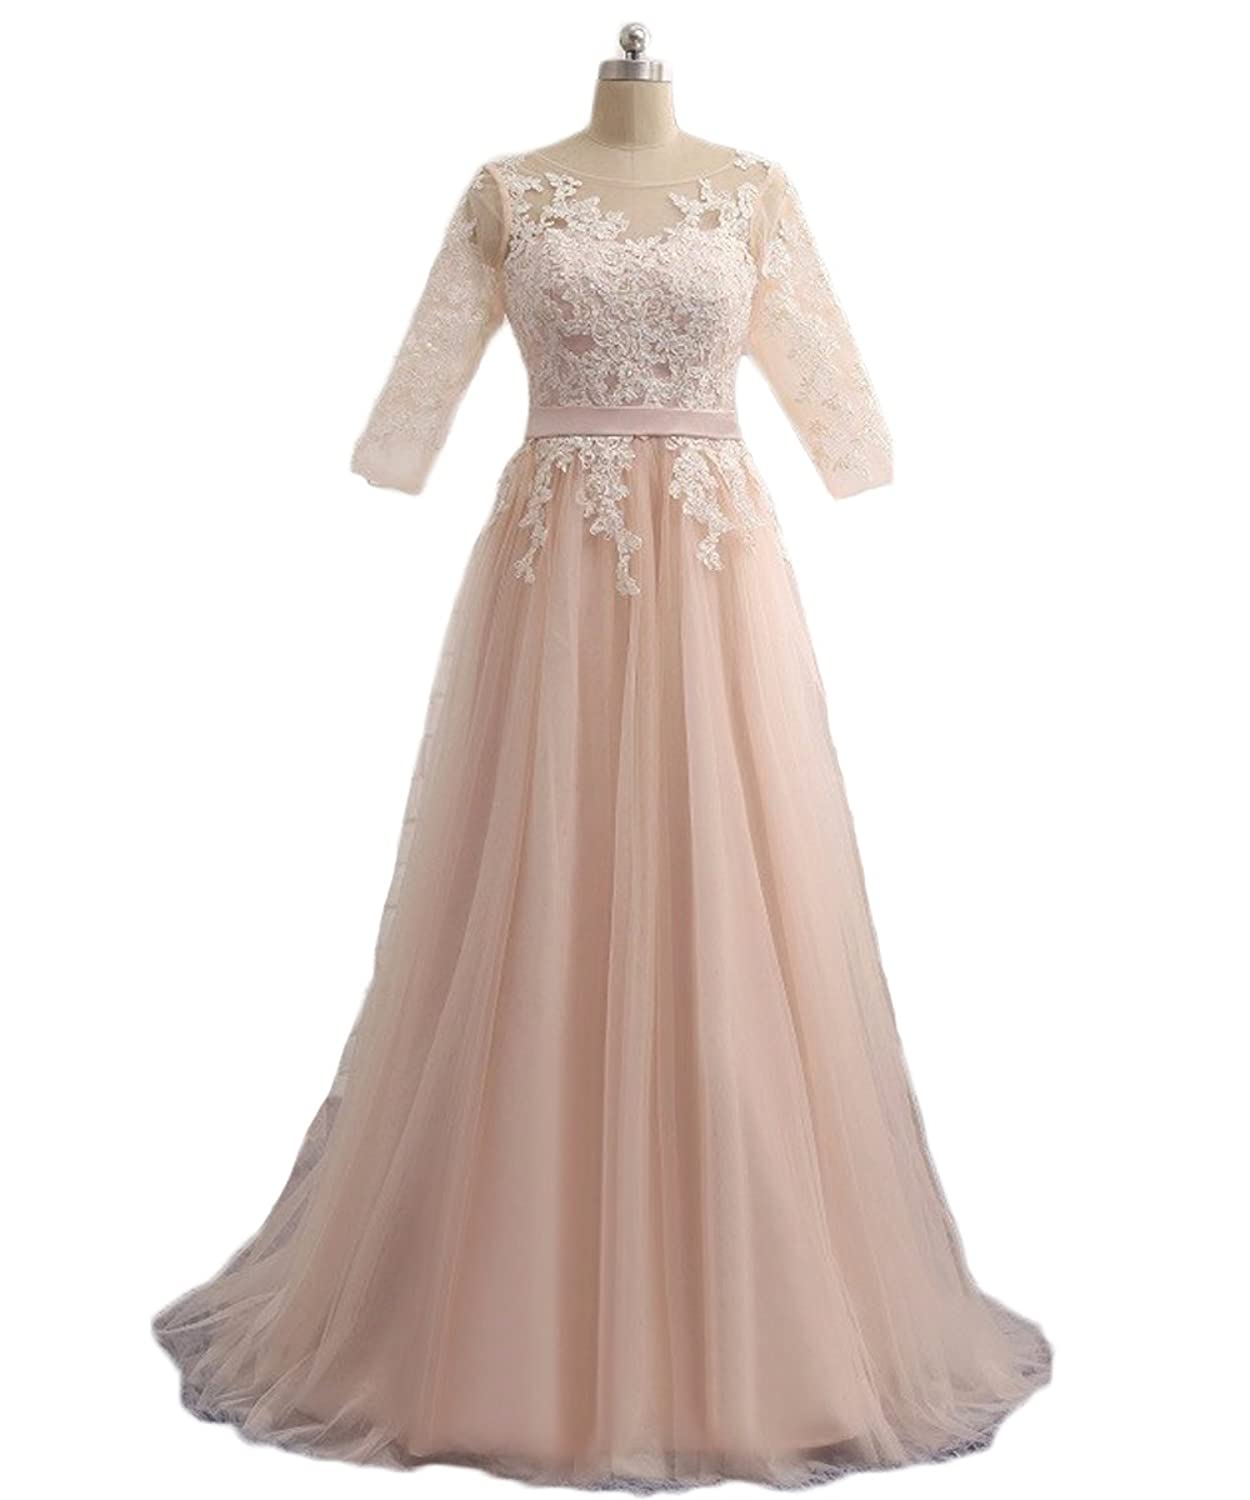 BKSKK Women's Champagne Prom Dress Appliques Half Sleeve Tulle Formal Party Dresses